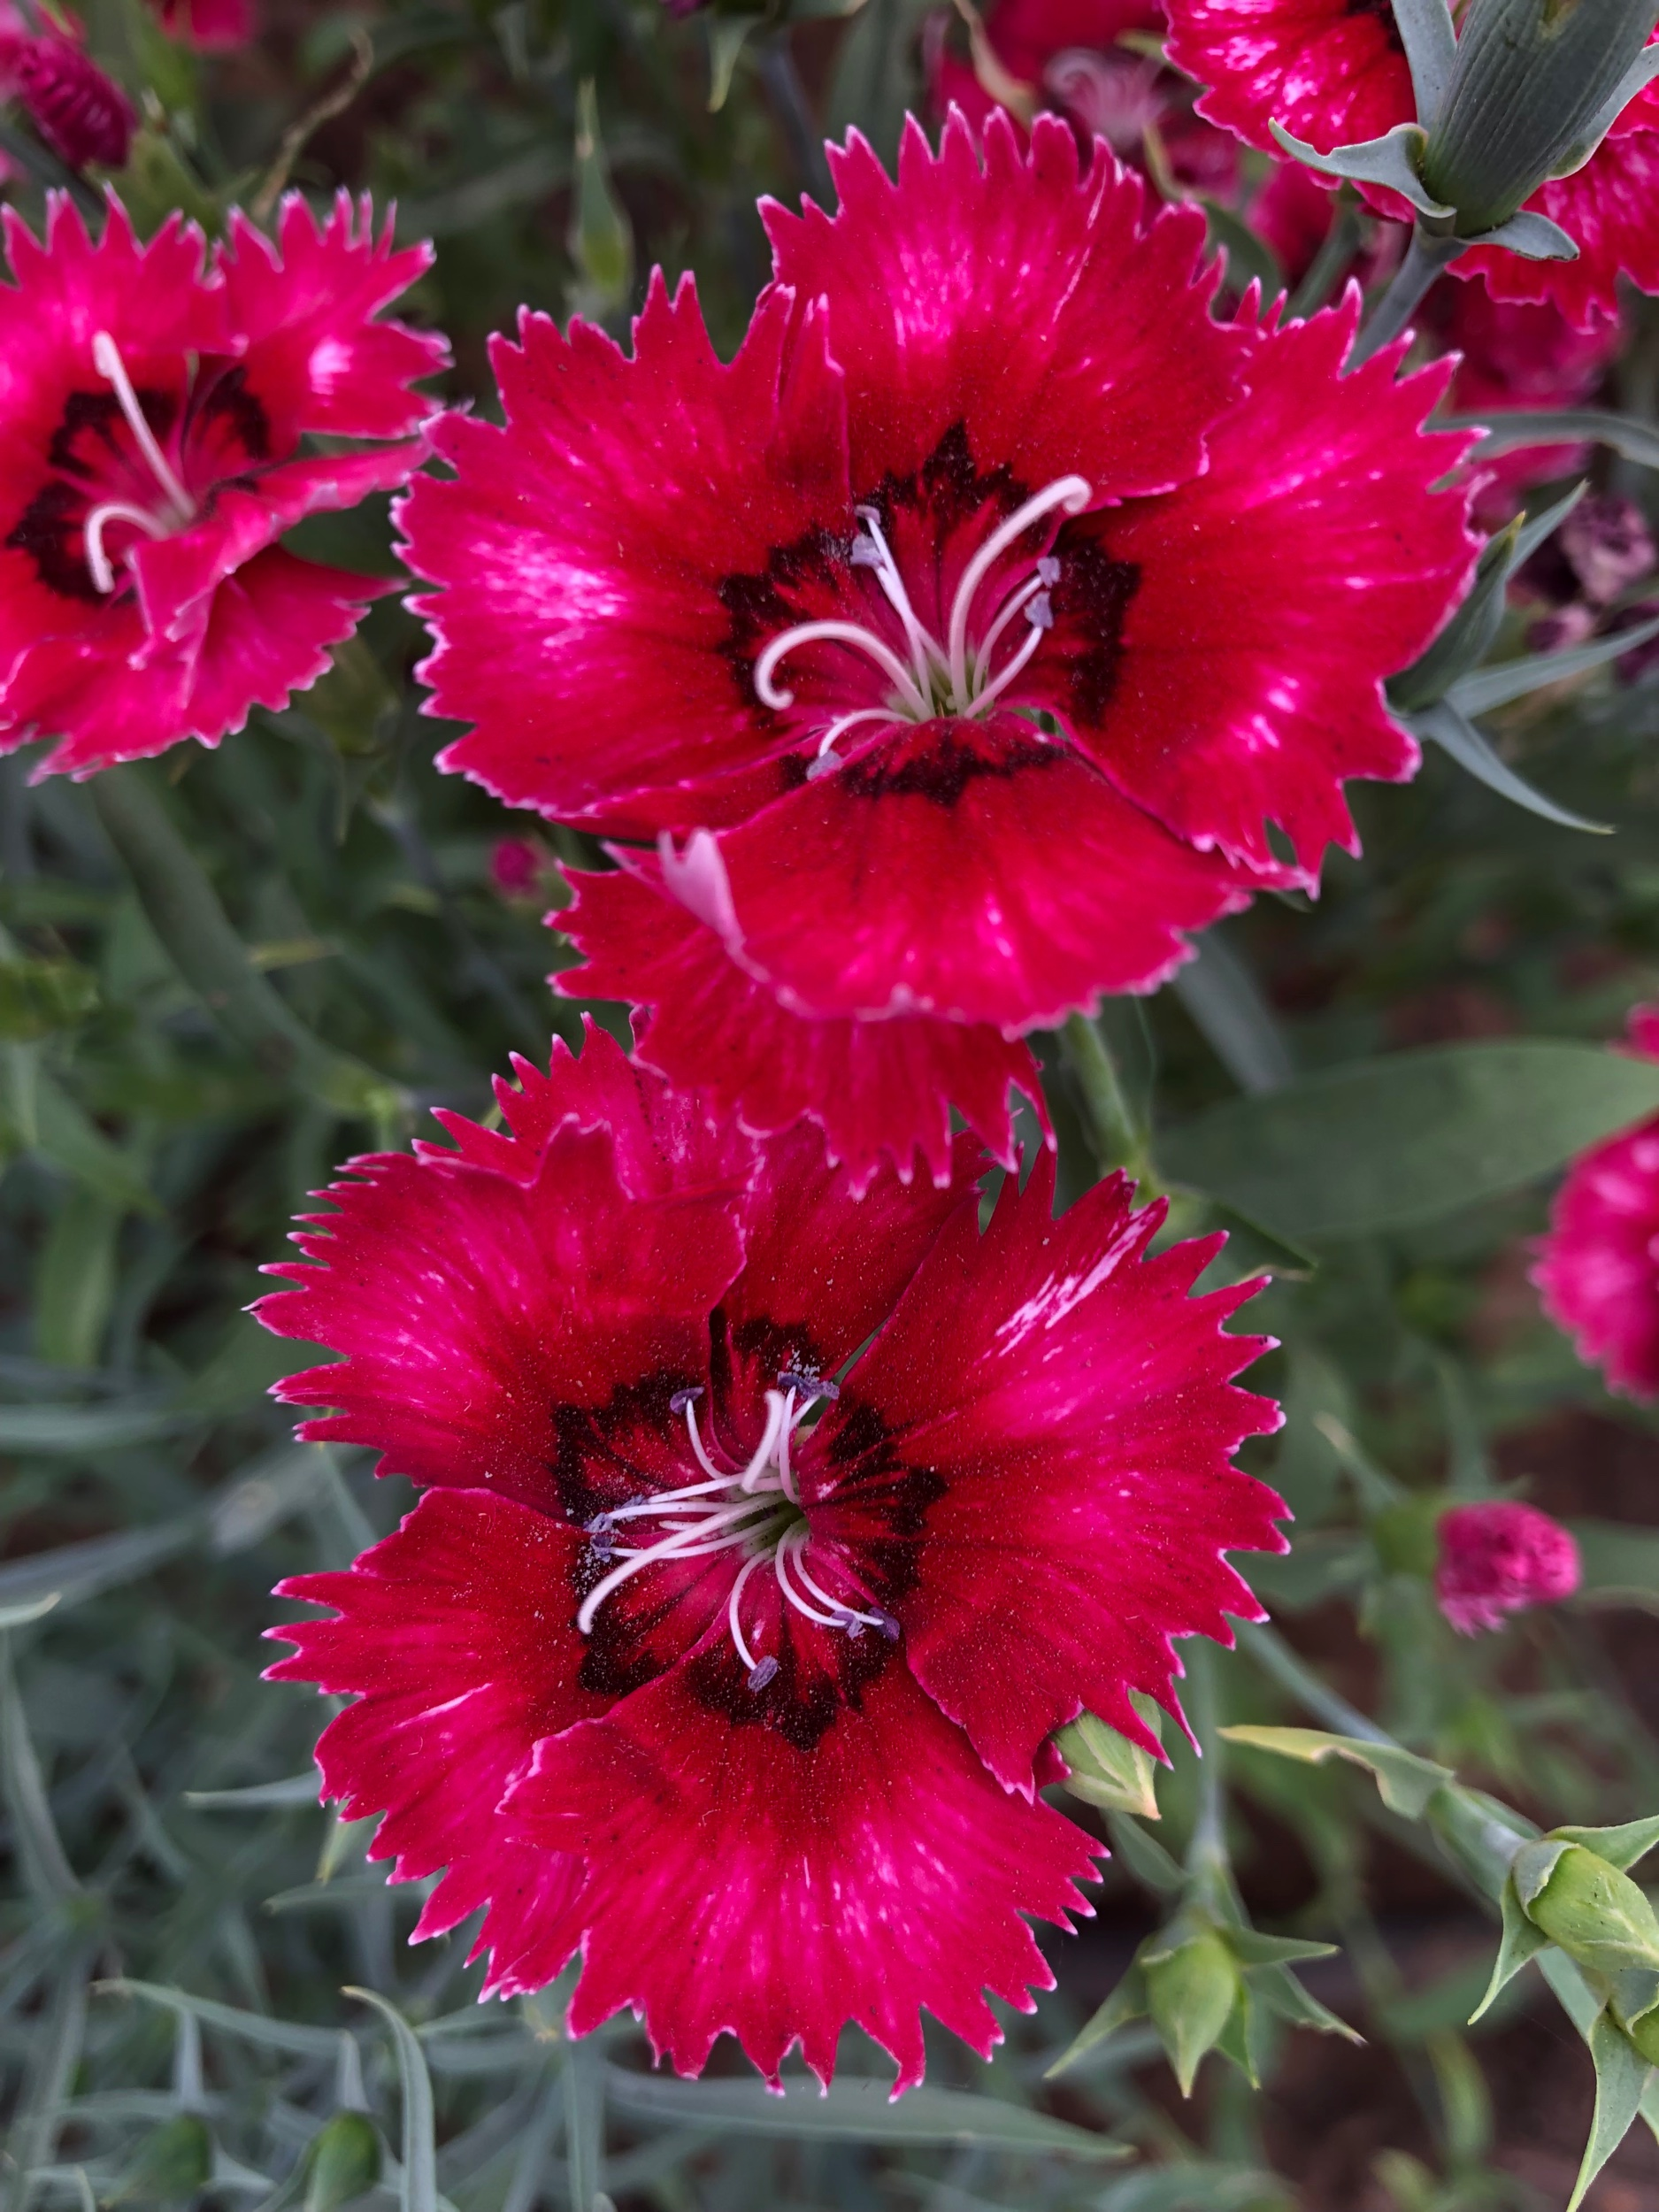 REF:31 'dianthus chinesis'  oeillet de poète, dianthus  flower petals can be scattered over salads, cakes. add a spicy tone to rice, pancakes or in summer drinks.